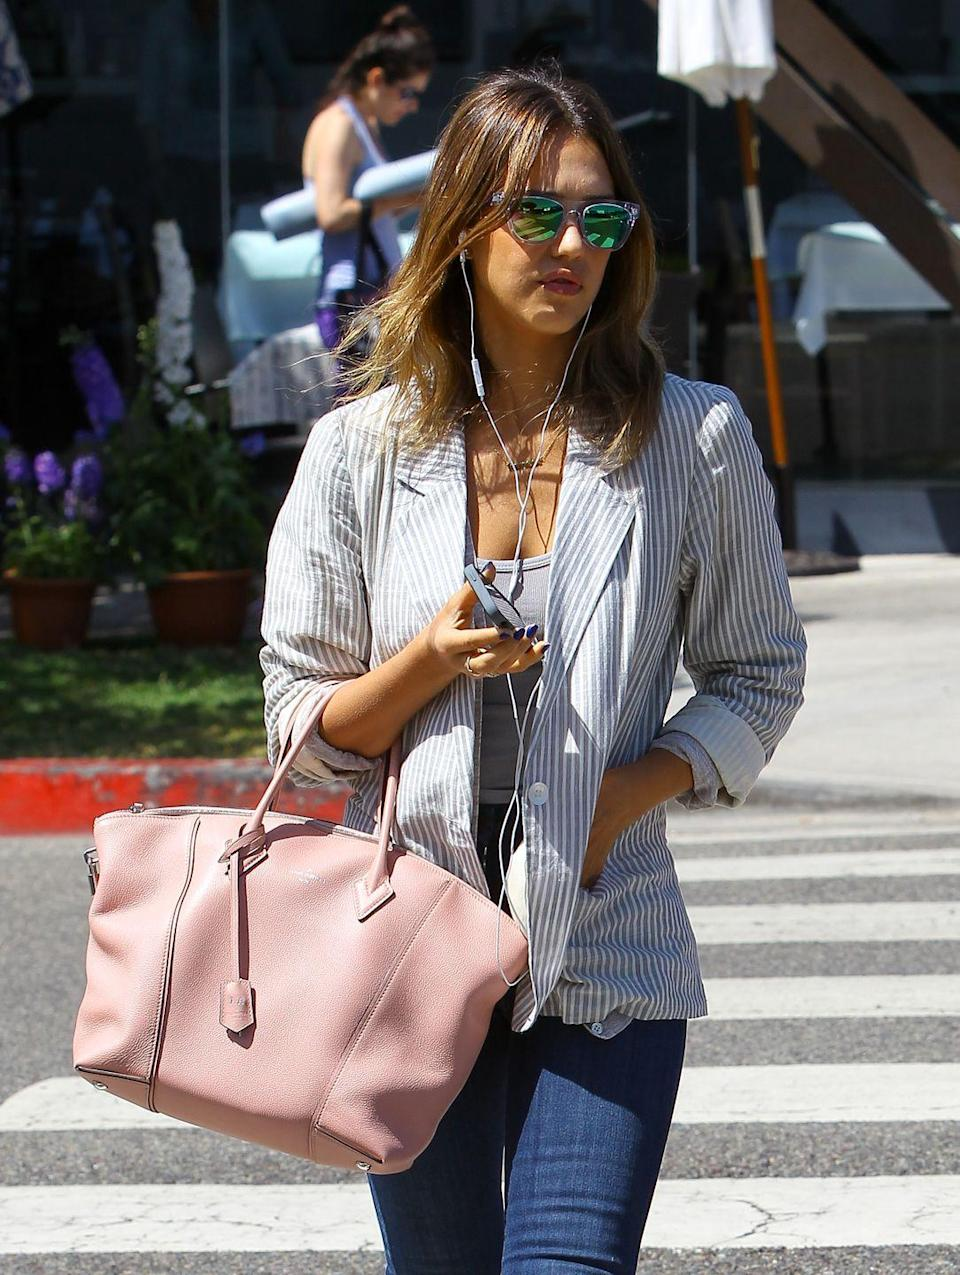 "<p>This is crucial, Jessica says. 'I definitely always have Drake, Jay-Z, Kanye, I have some new artists that I've been listening to a lot,' she told <a href=""https://www.byrdie.com/jessica-alba-diet-fitness-tips"" rel=""nofollow noopener"" target=""_blank"" data-ylk=""slk:Byrdie"" class=""link rapid-noclick-resp"">Byrdie</a>. 'I like any kind of West Coast rapper—usually more hip-hop and rap and less pop music.' <br></p>"